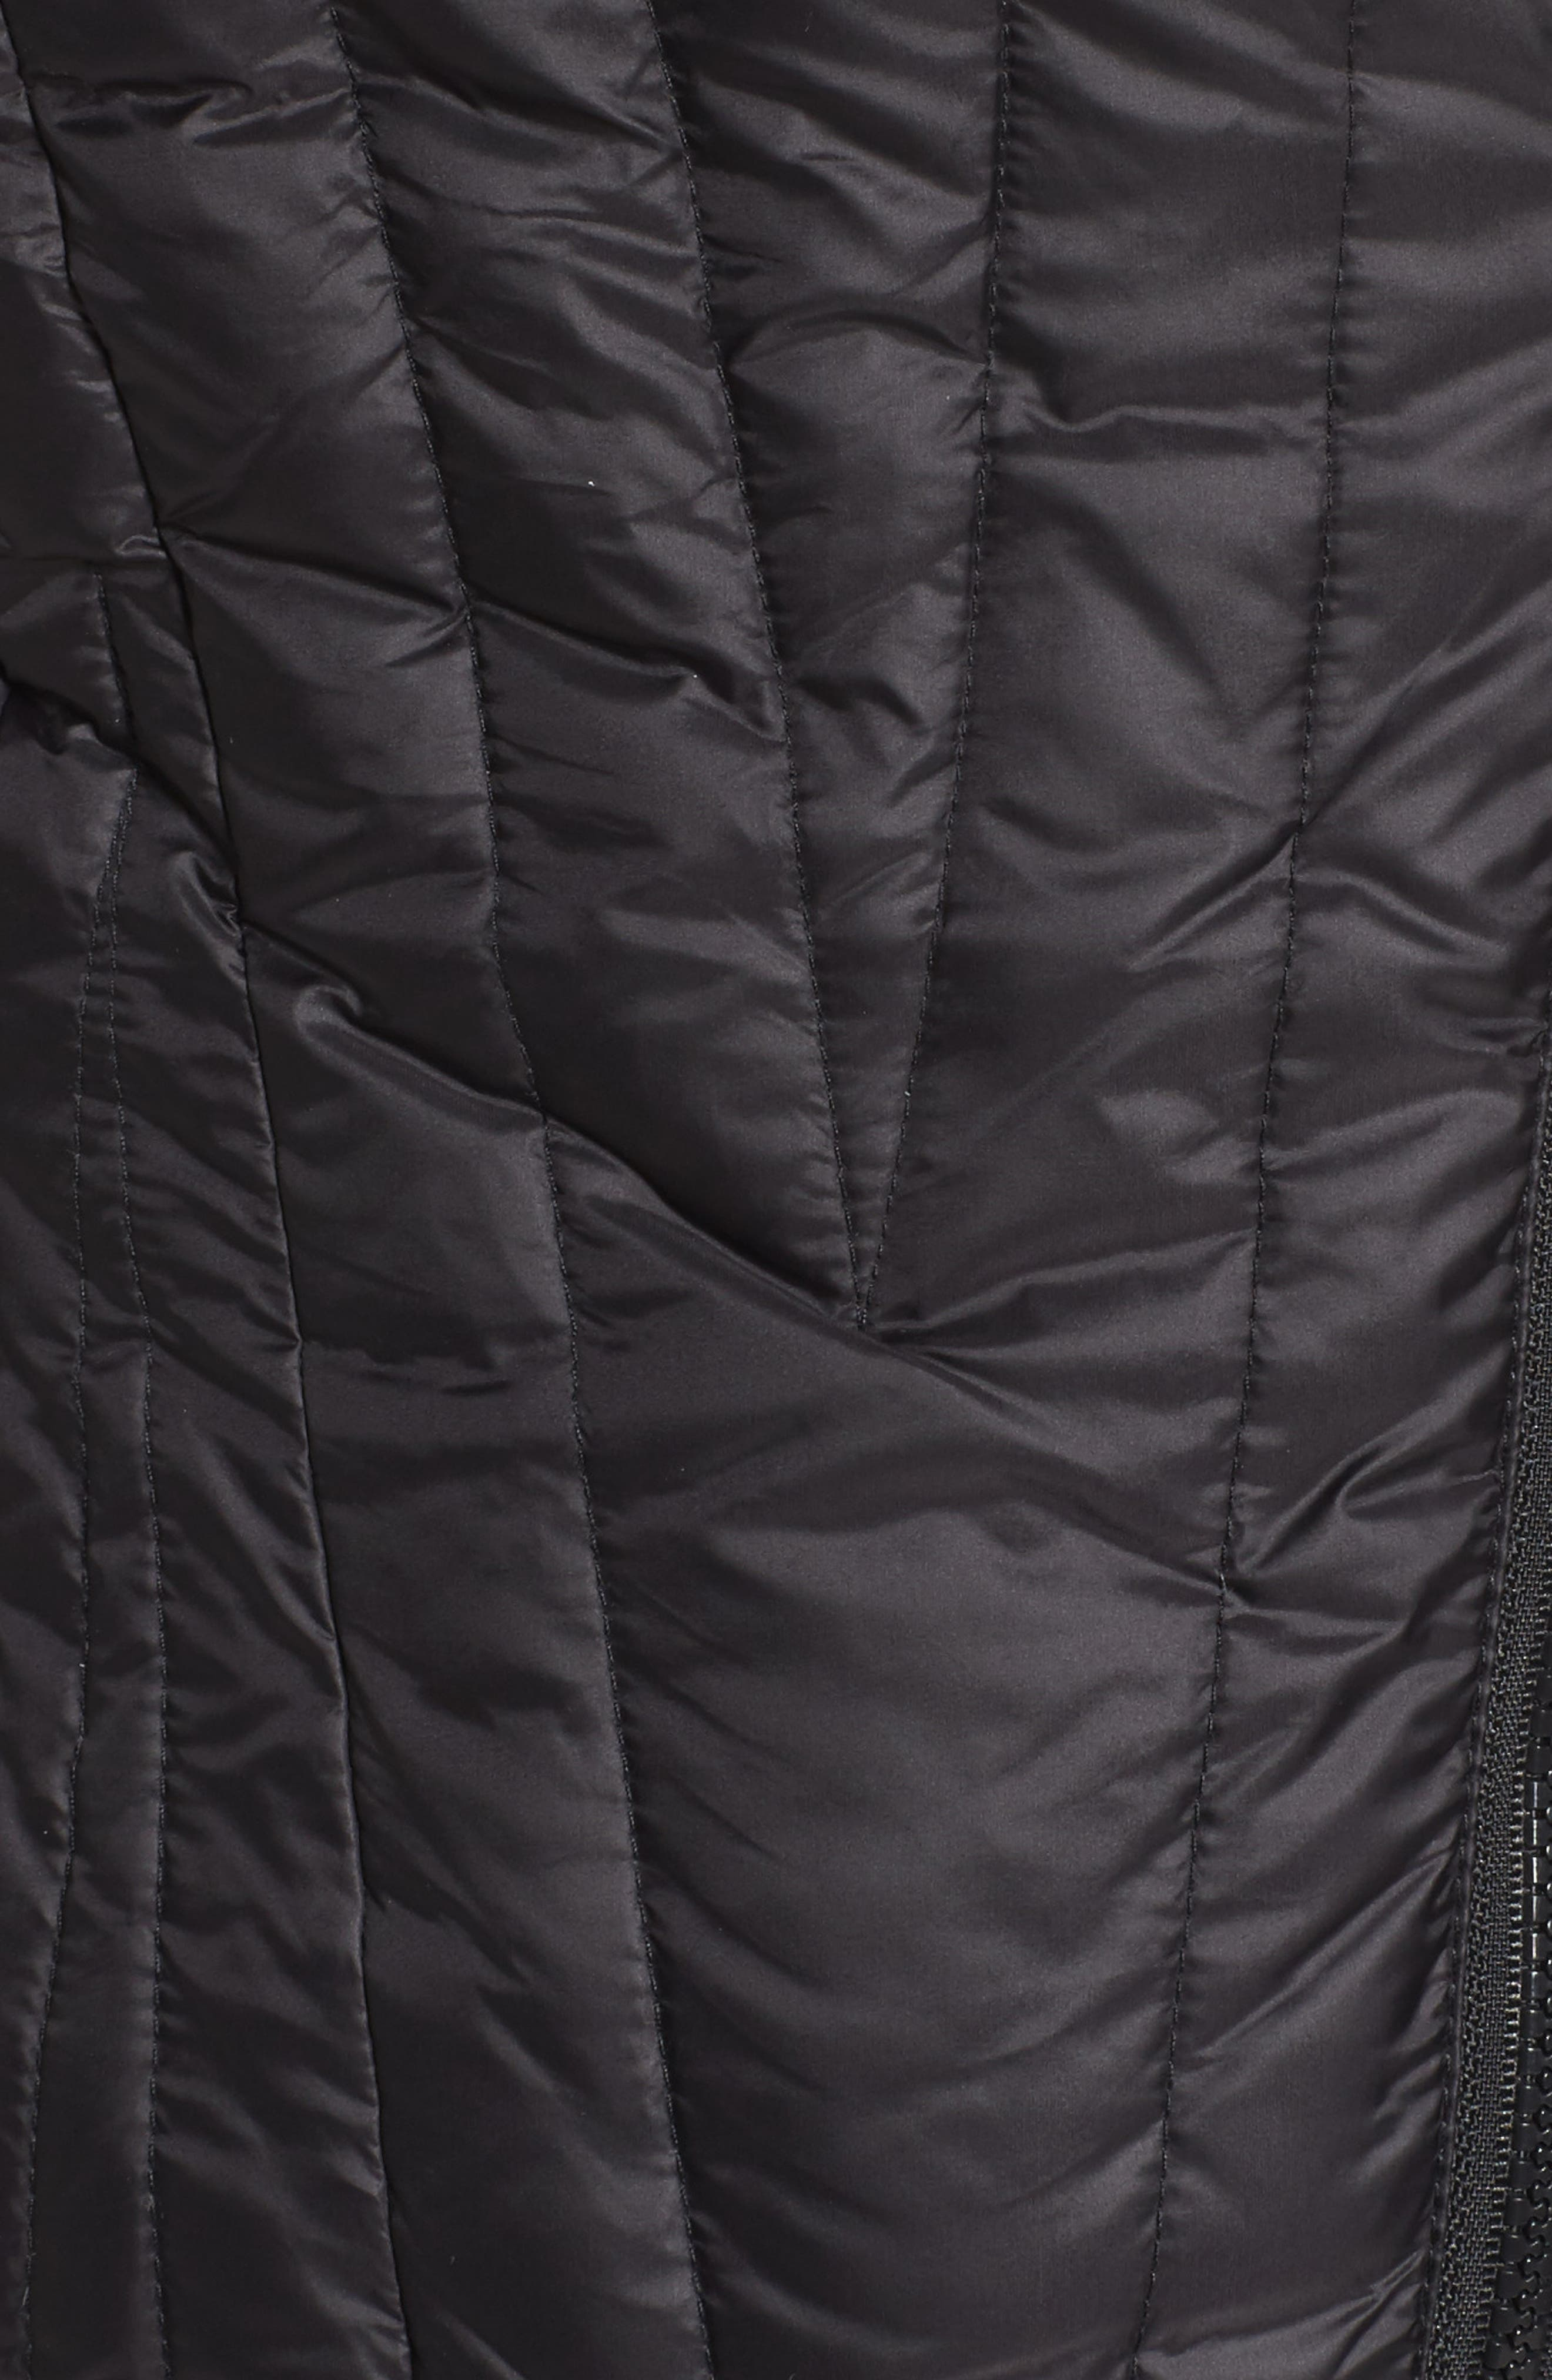 Motion Panel Down Puffer Jacket,                             Alternate thumbnail 7, color,                             009